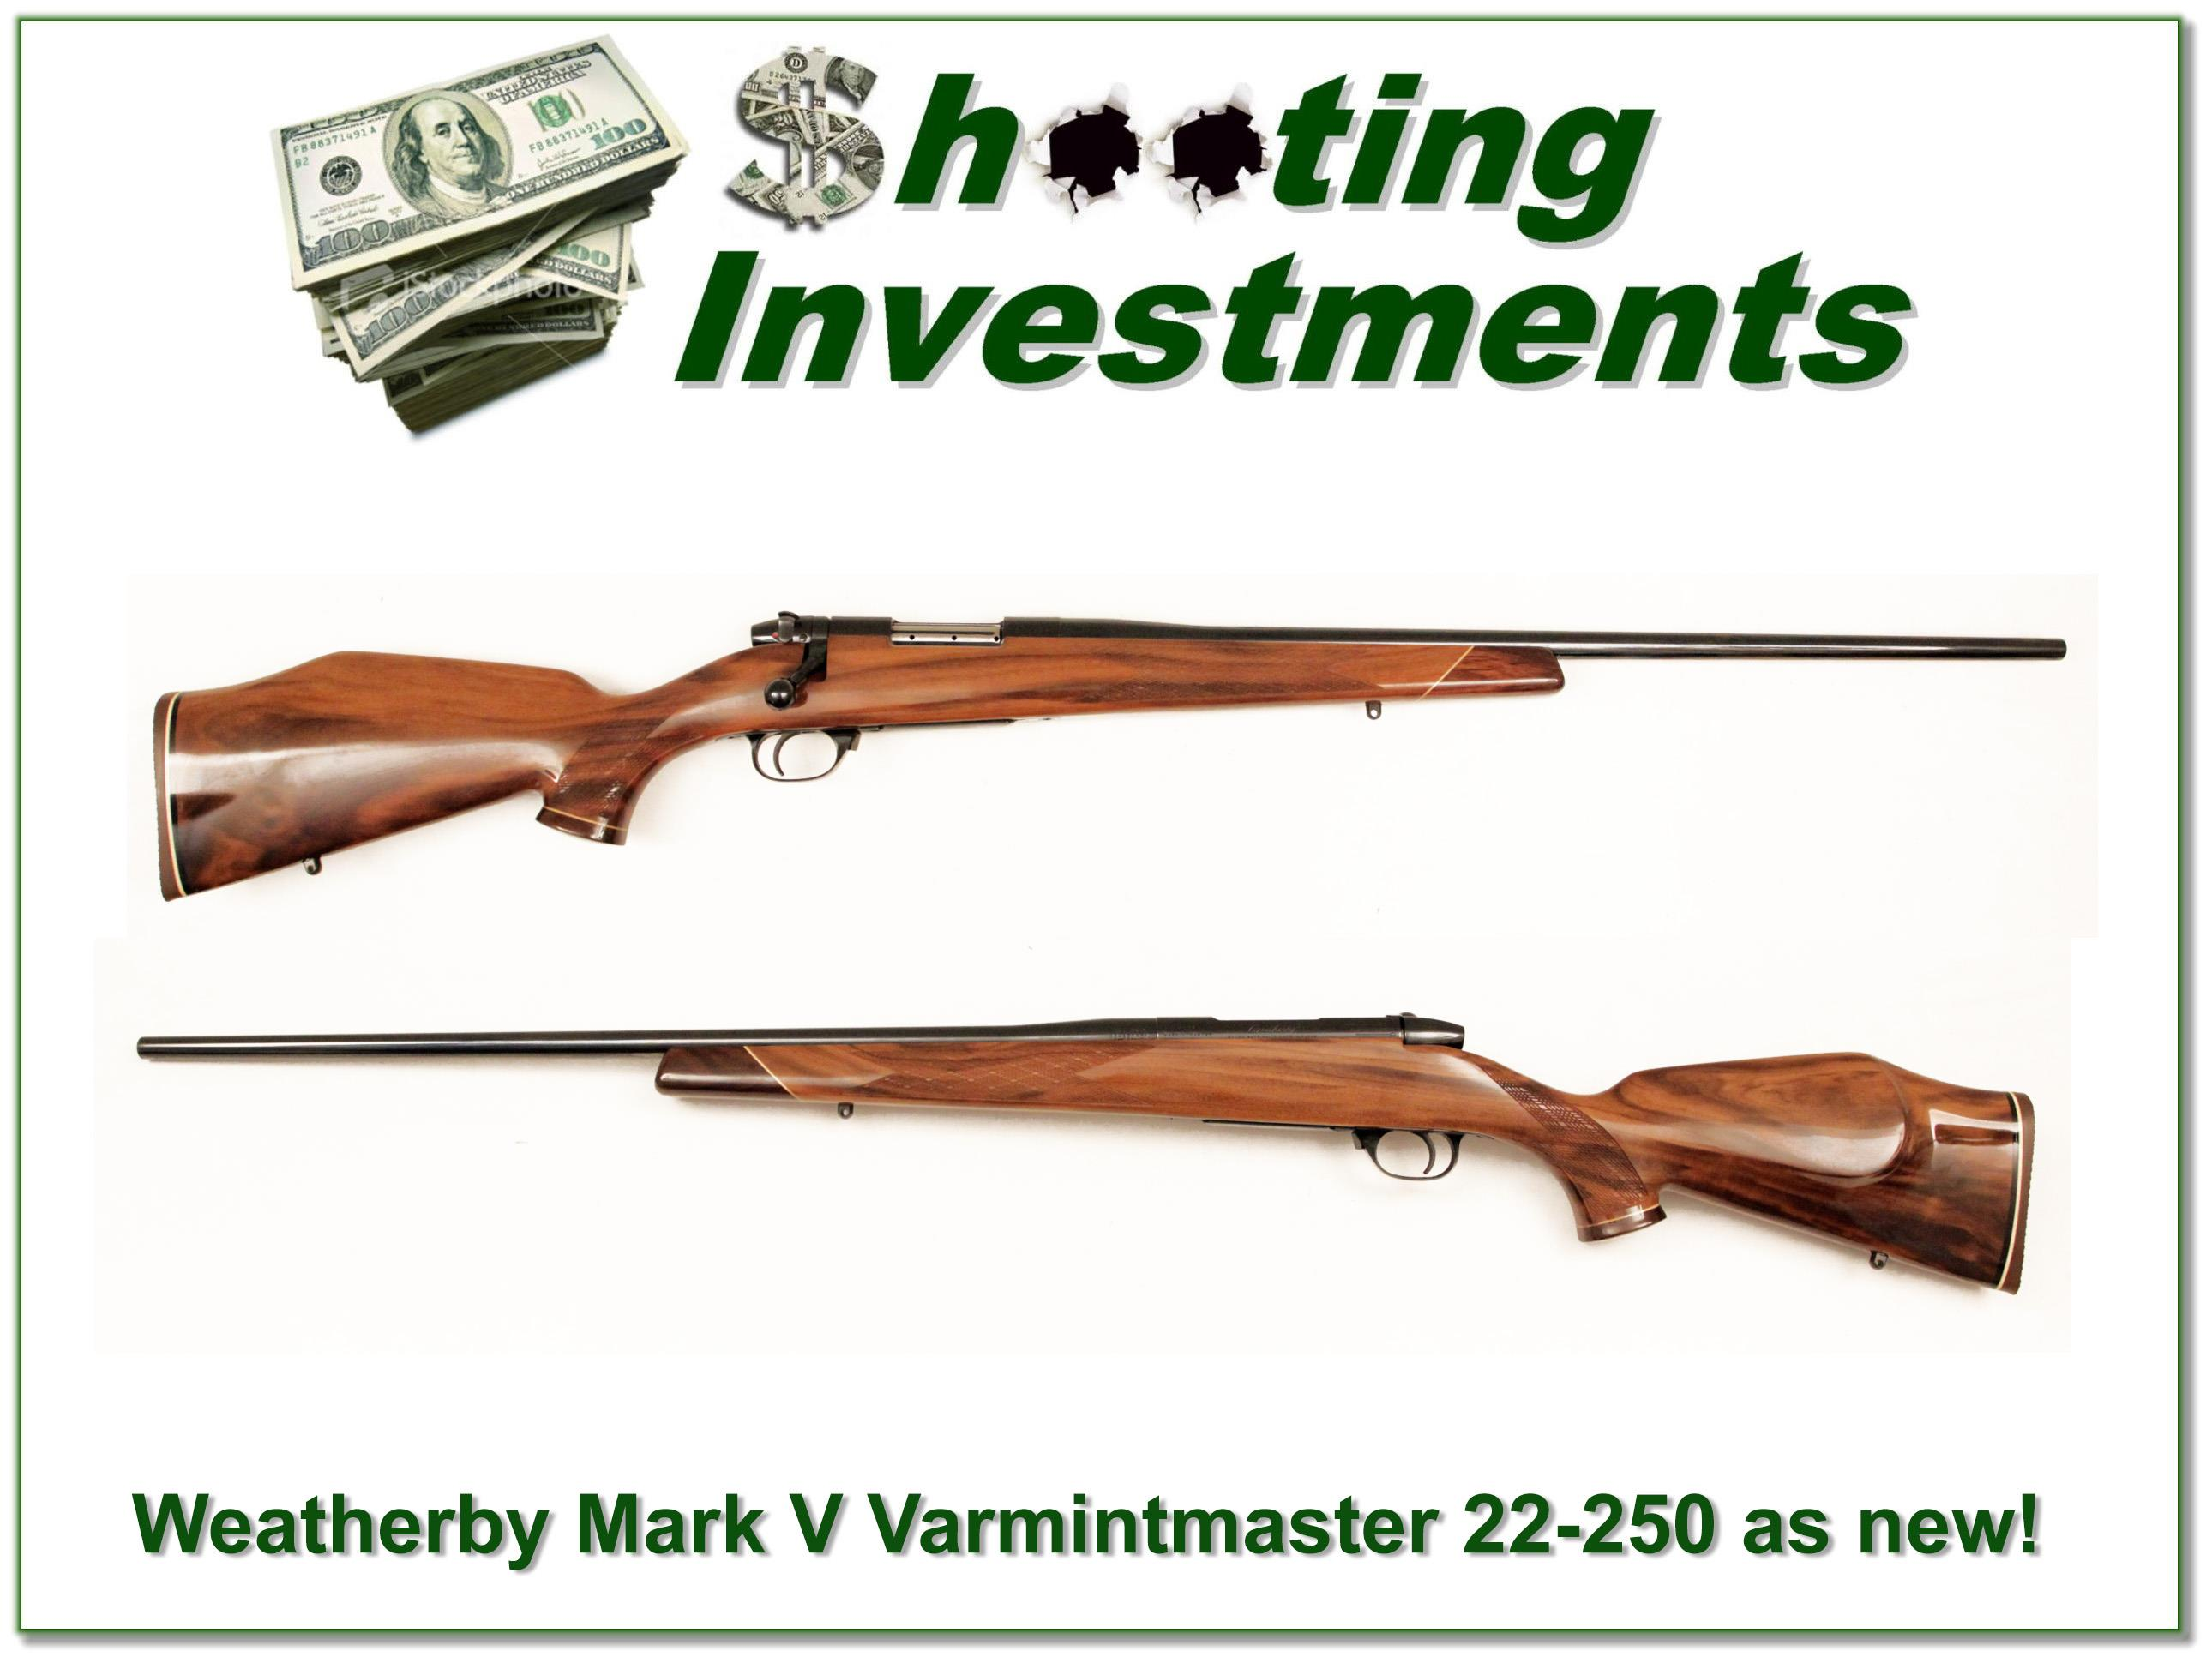 Weatherby Mark V Varmintmaster 22-250 as new!  Guns > Rifles > Weatherby Rifles > Sporting